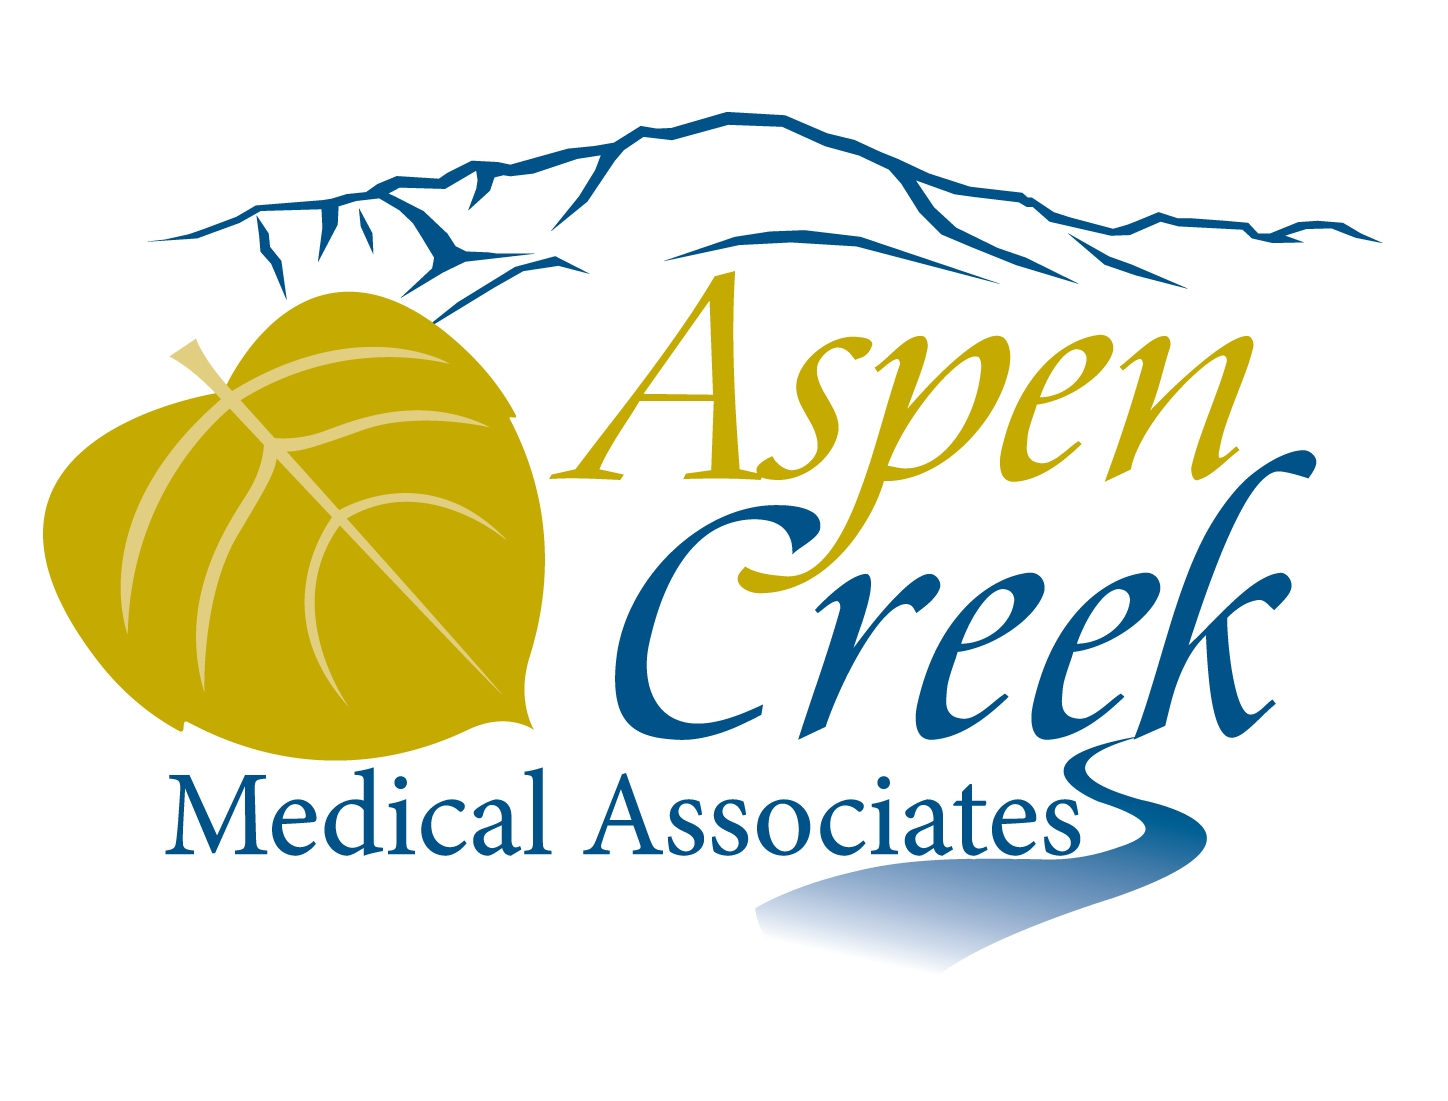 Aspen Creek Medical Associates